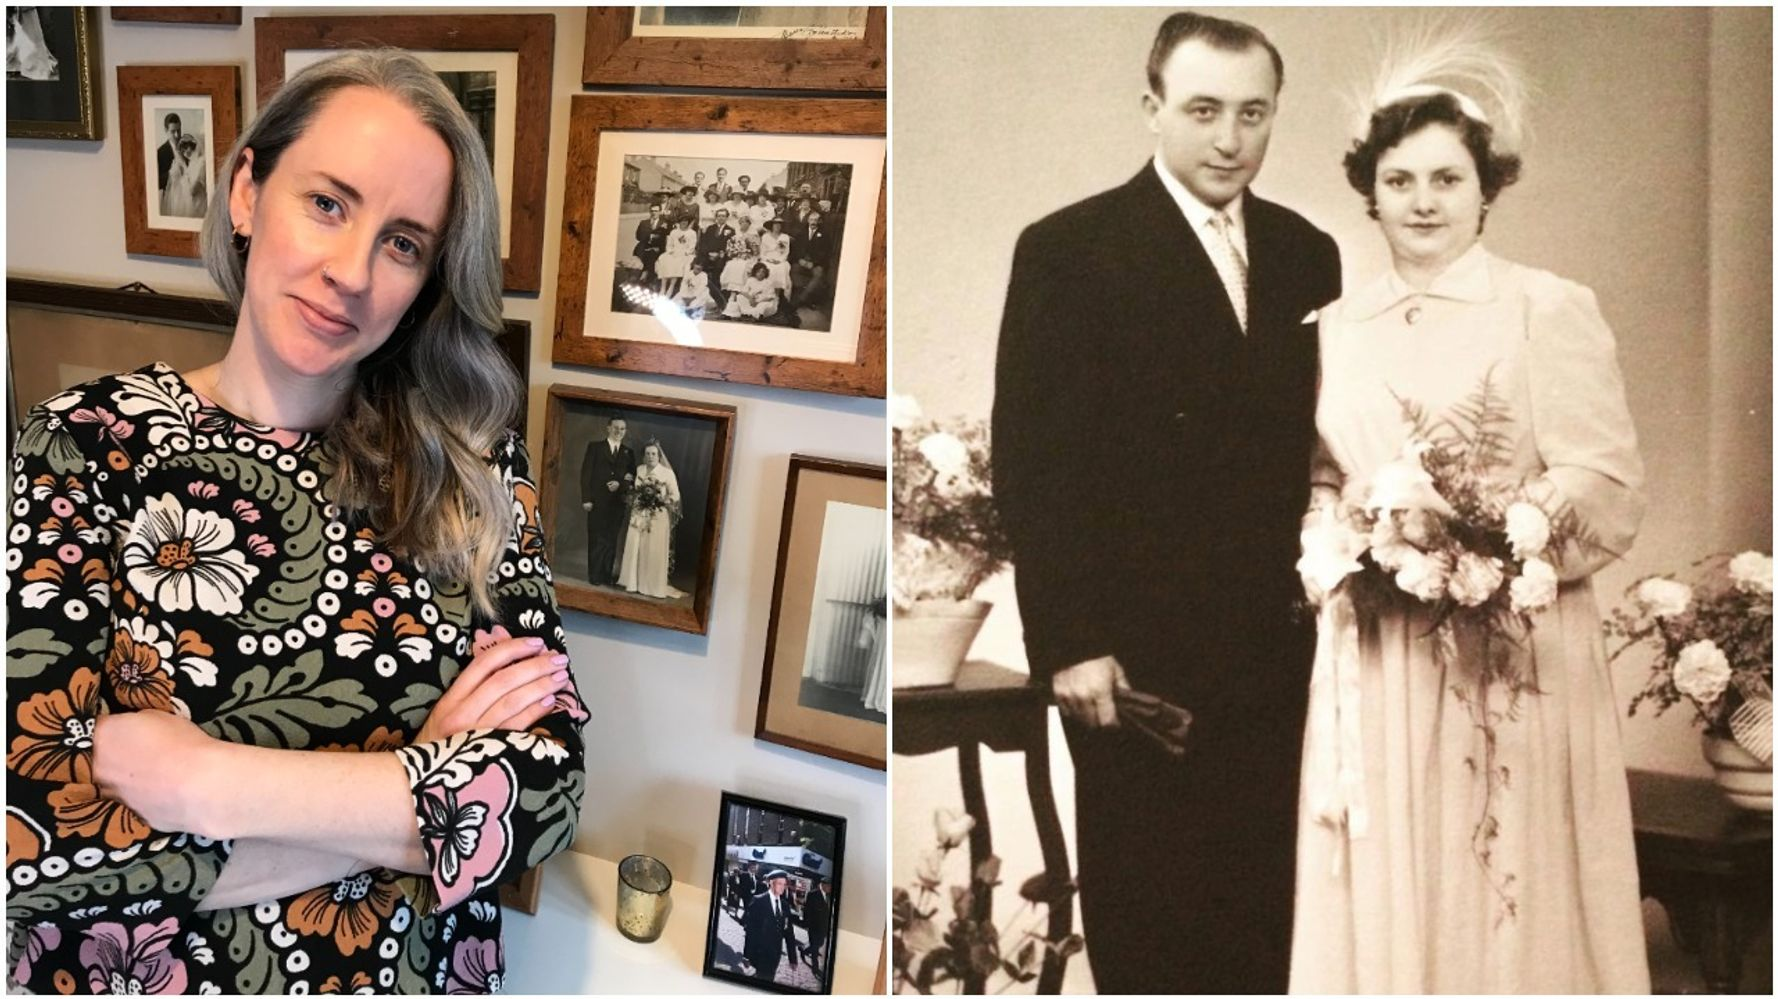 This Woman Found A Vintage Wedding Album And Tracked Down Its Long Lost Family